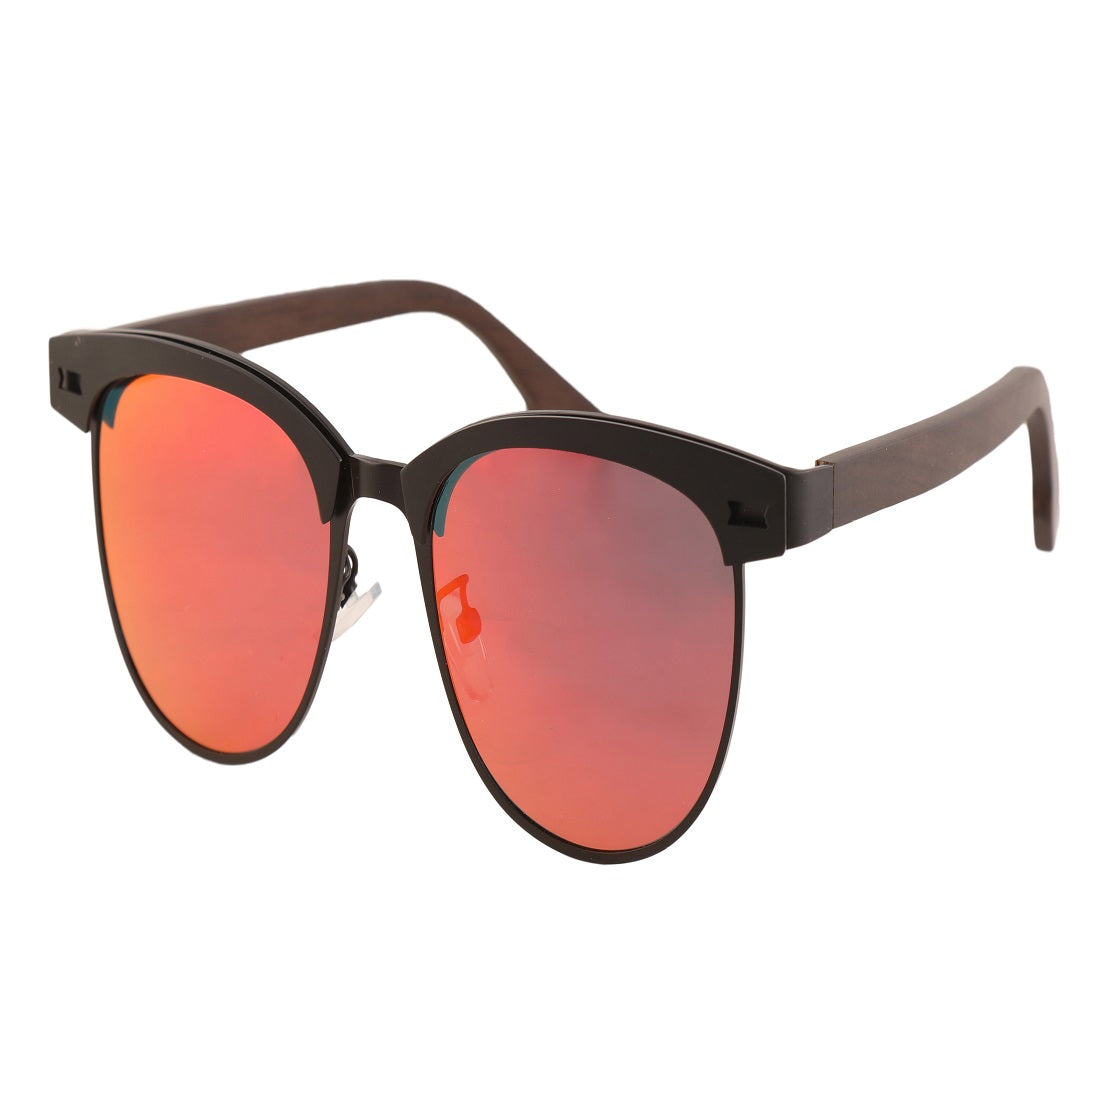 OPTA SG-015 Clubmaster Designer Polarized Ebony wood Sunglasses with 100% UV Protection for Unisex (Black Steel Full Rim Frame with Mirror Red Lens)